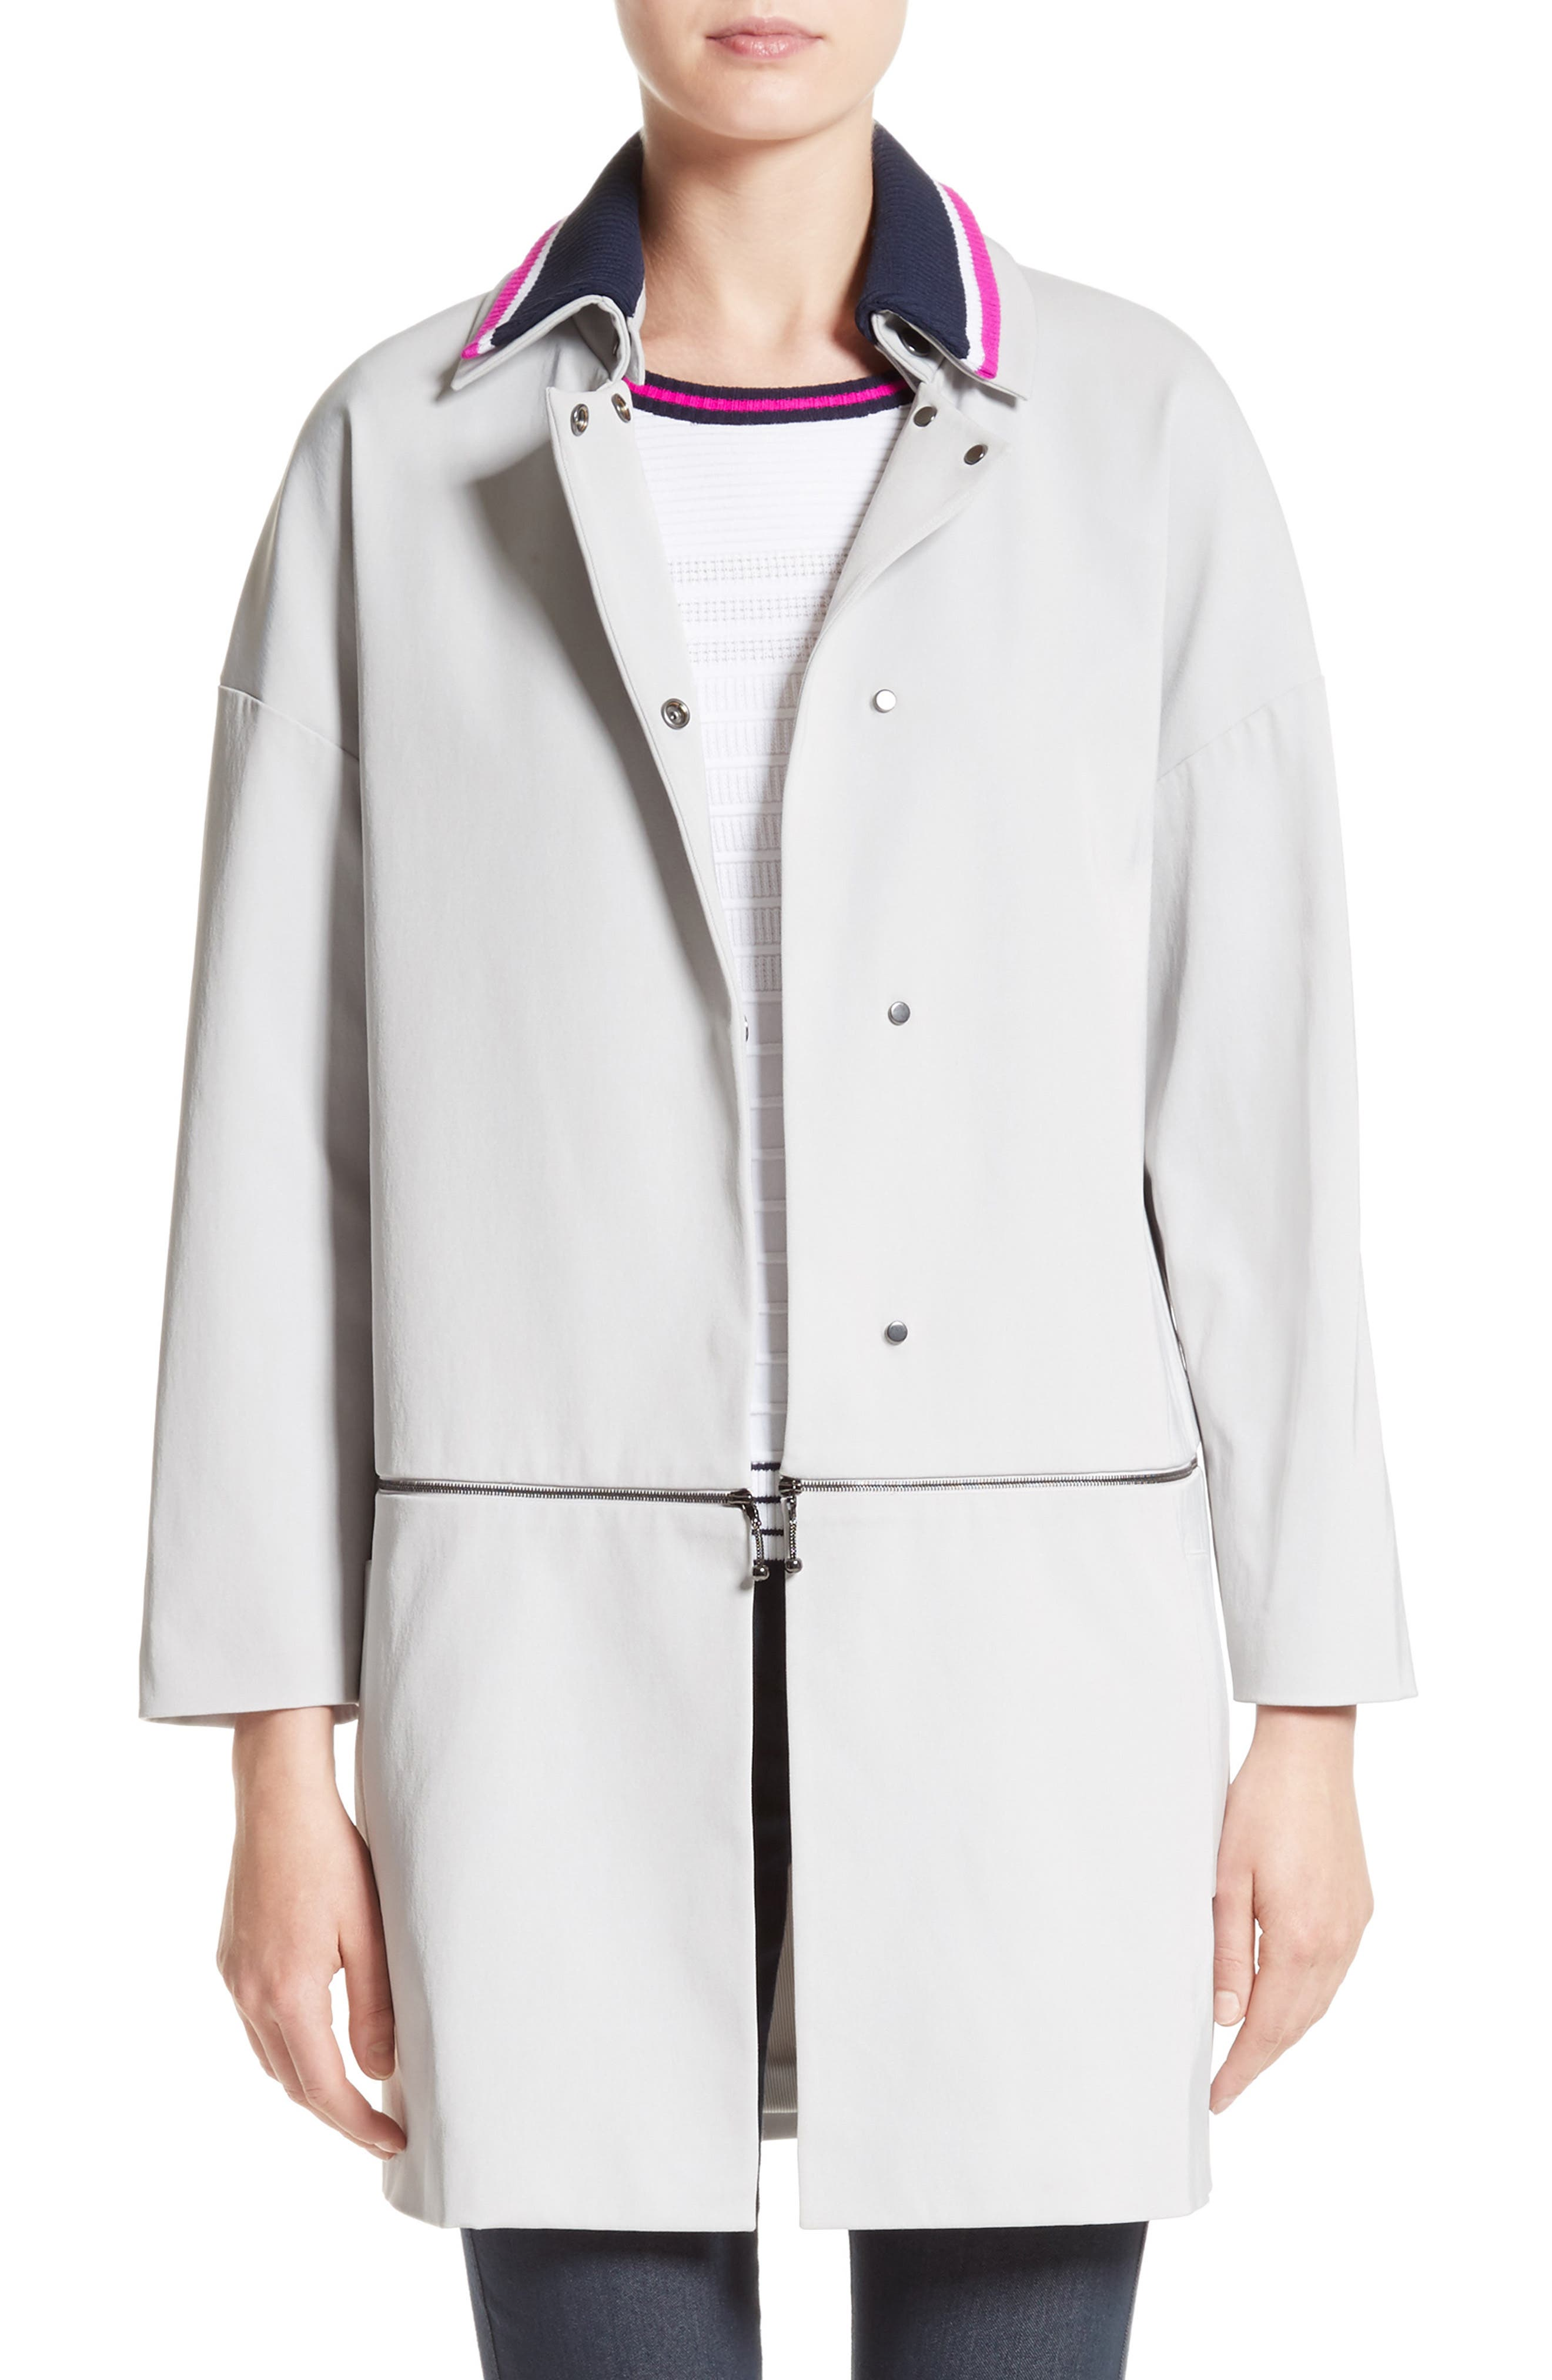 Alternate Image 1 Selected - St. John Collection Stretch Twill Convertible Coat